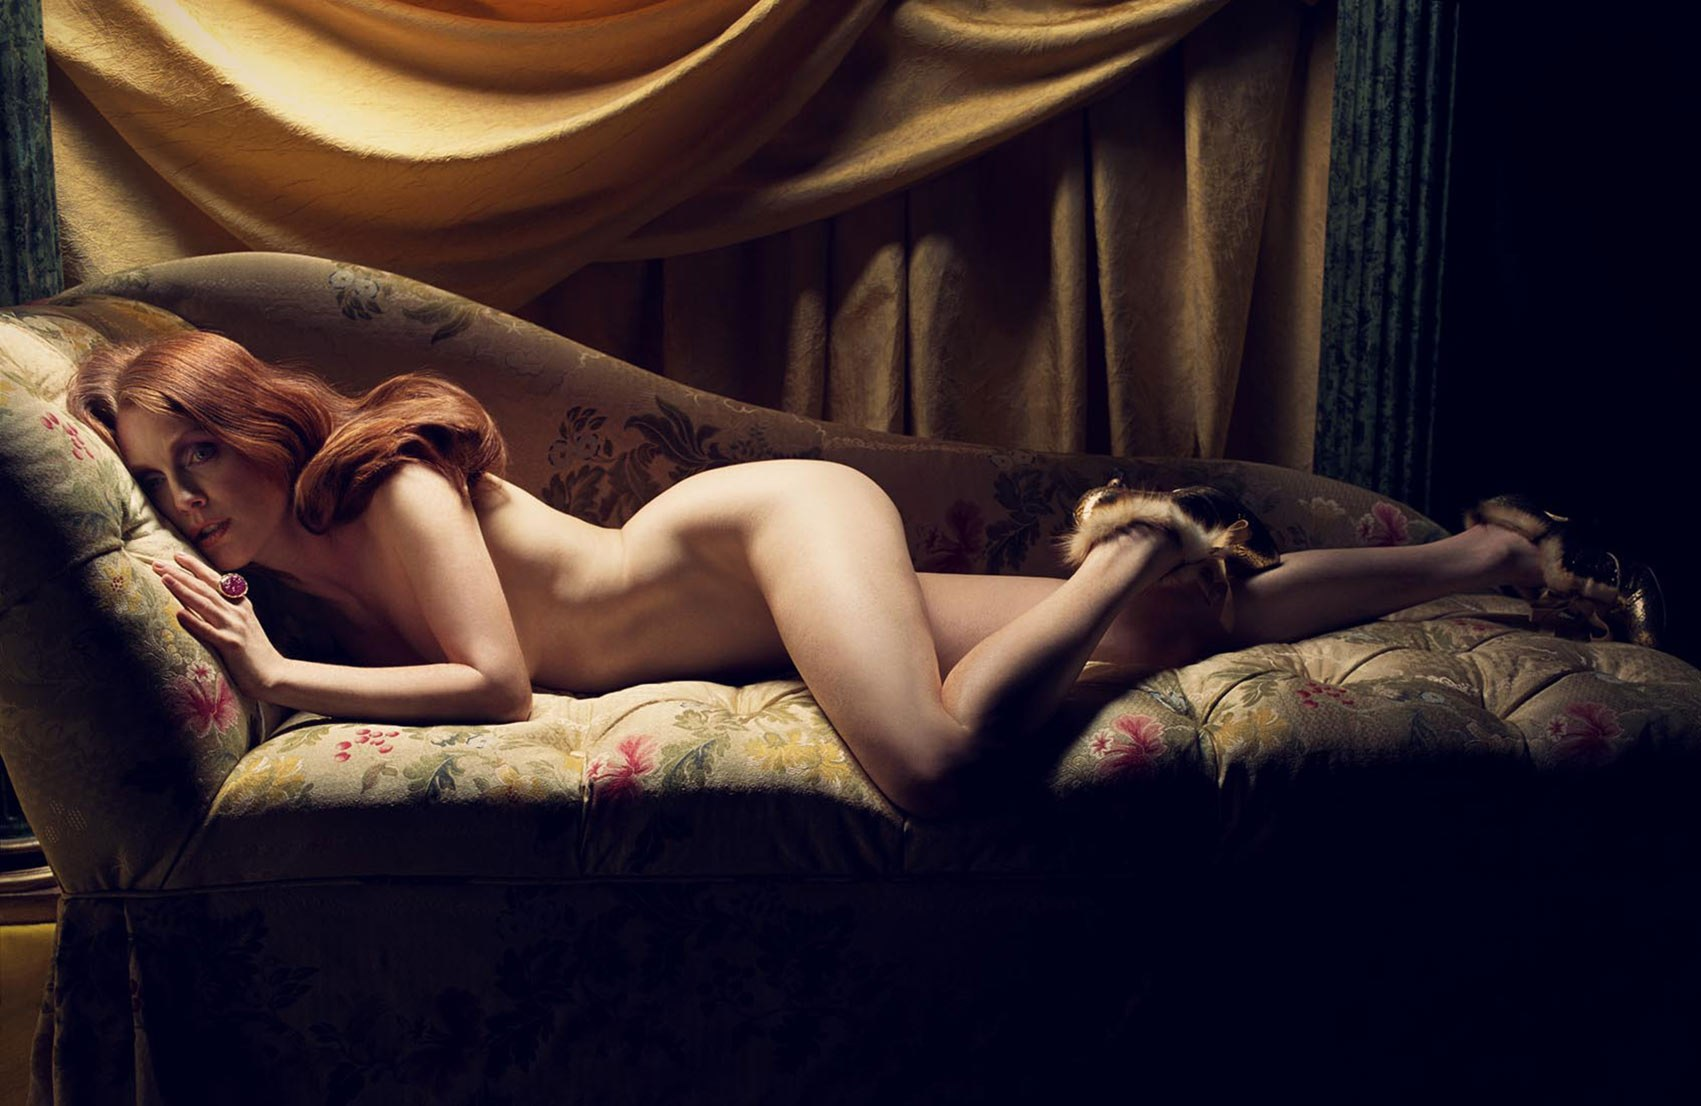 julianne moore naked